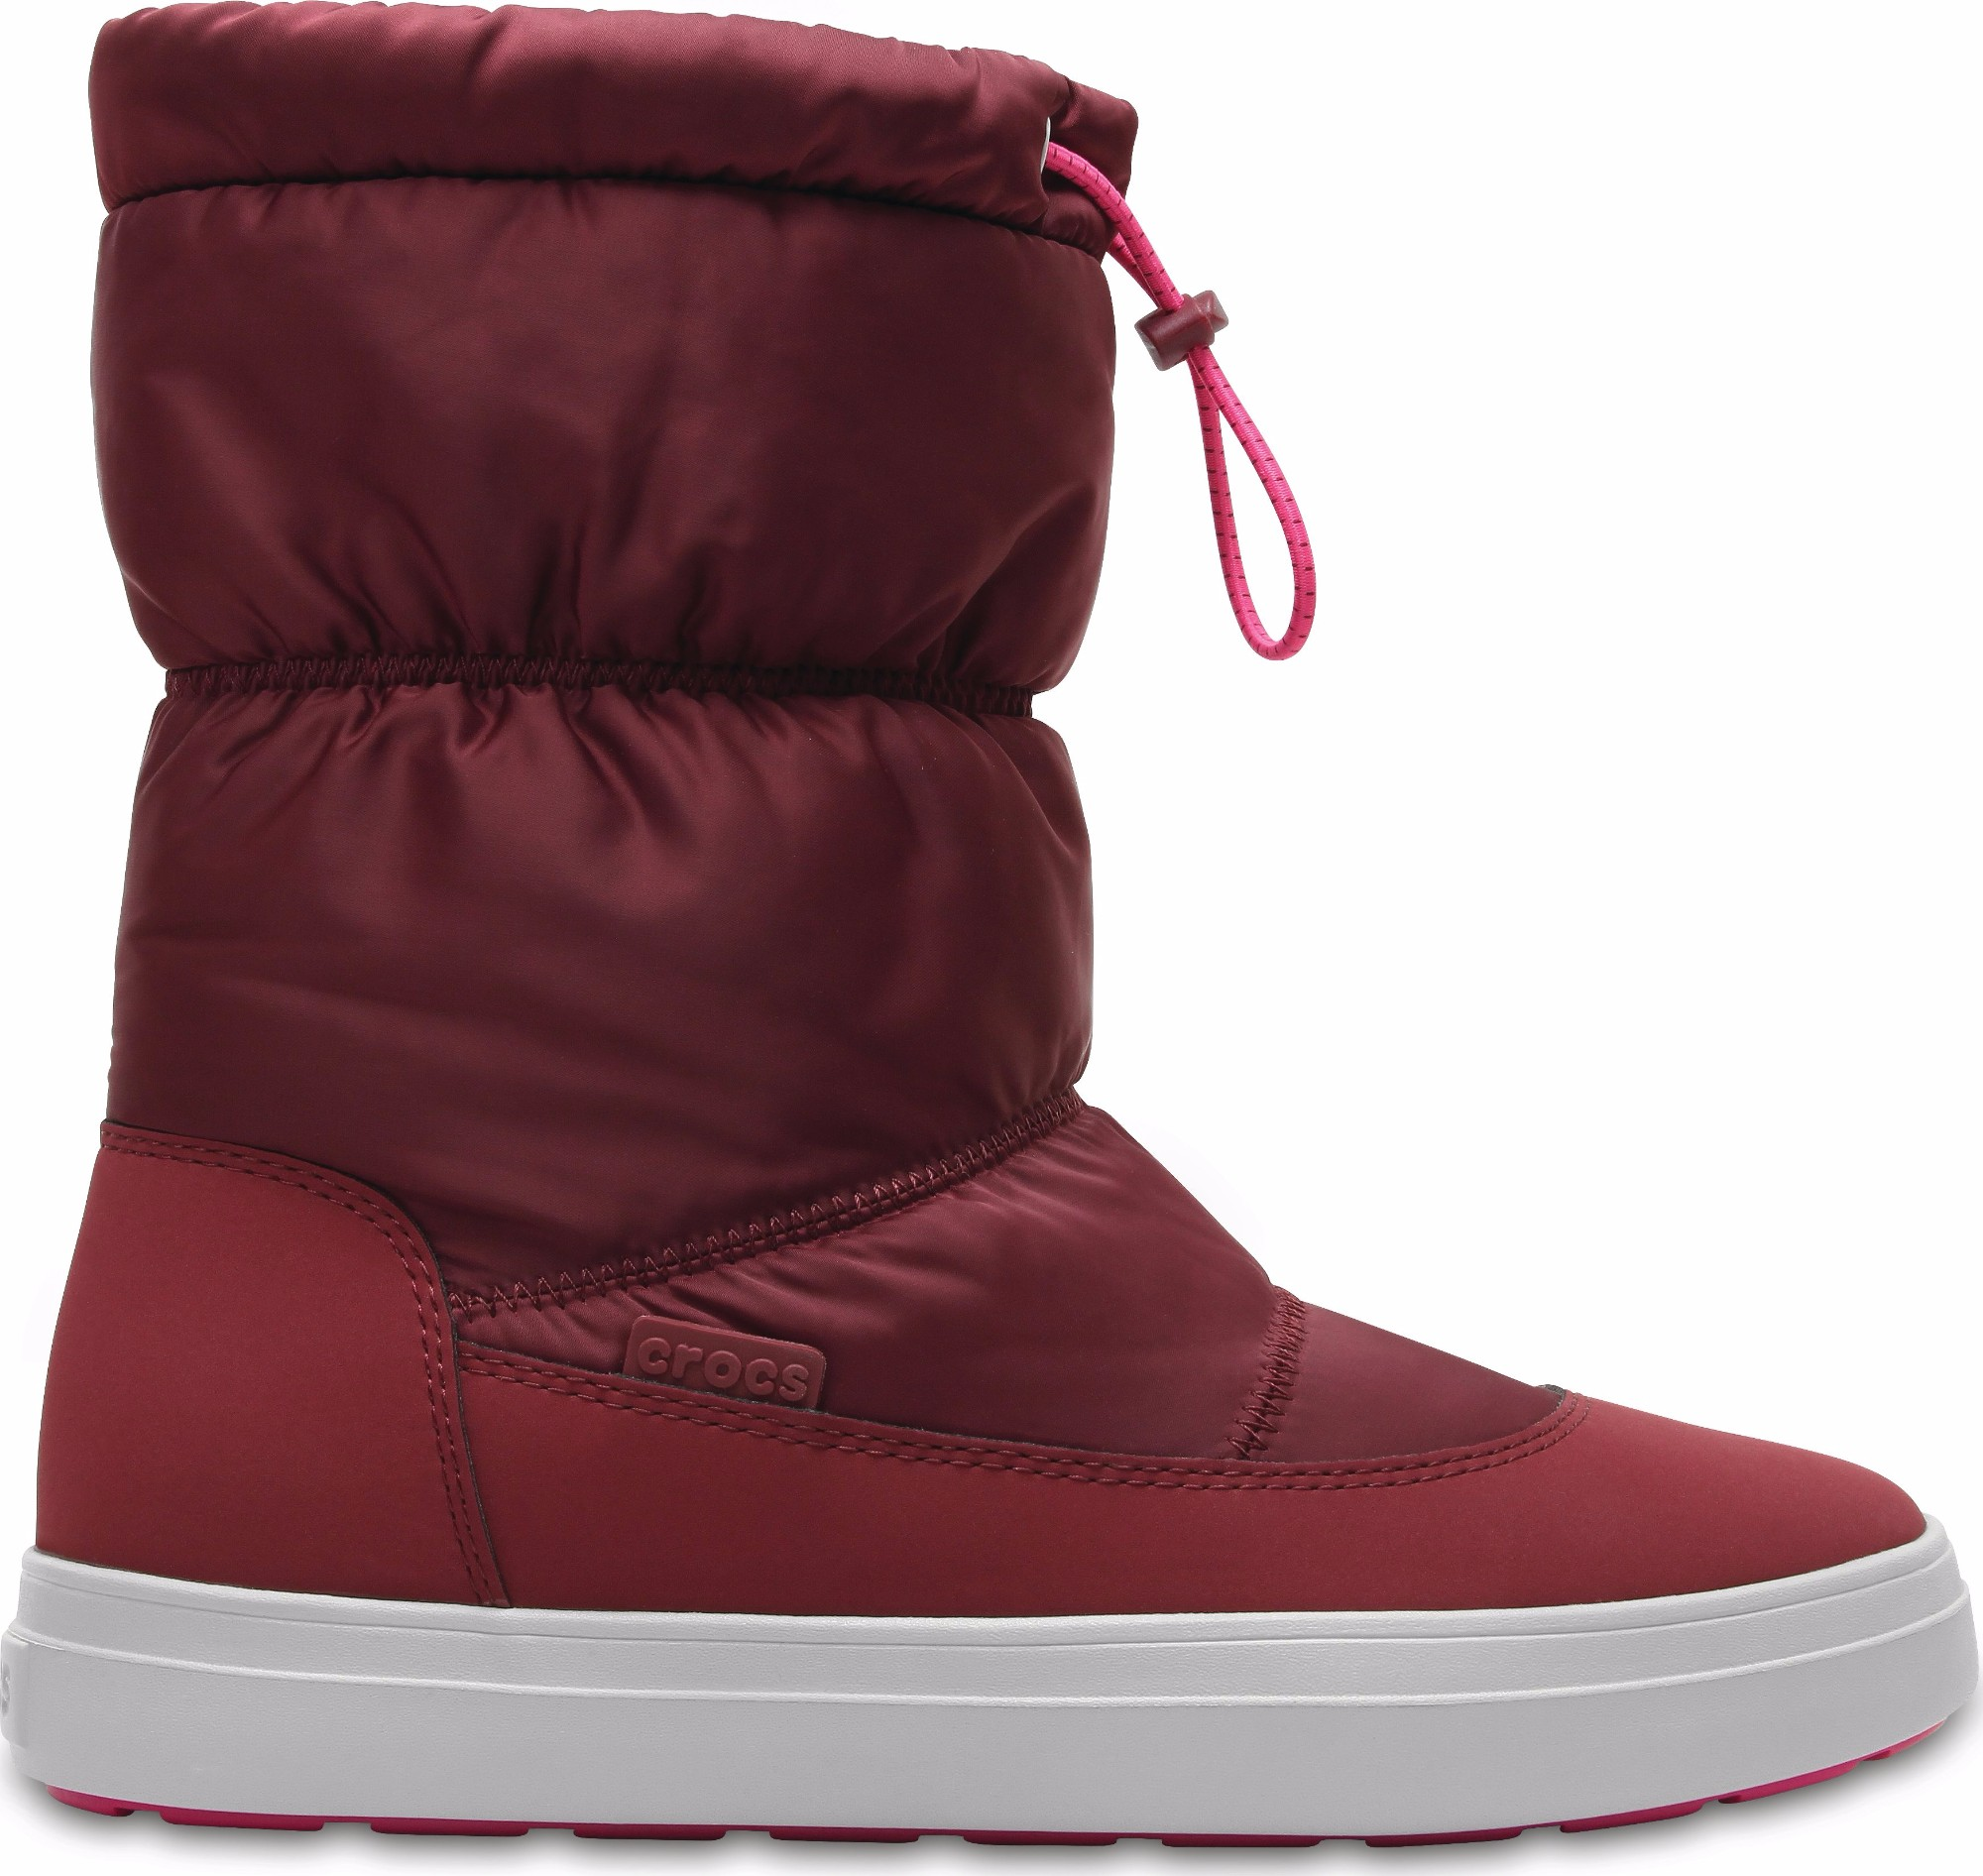 Crocs™ Lodgepoint Shiny Pull-On Boot Garnet/Candy Pink 42,5